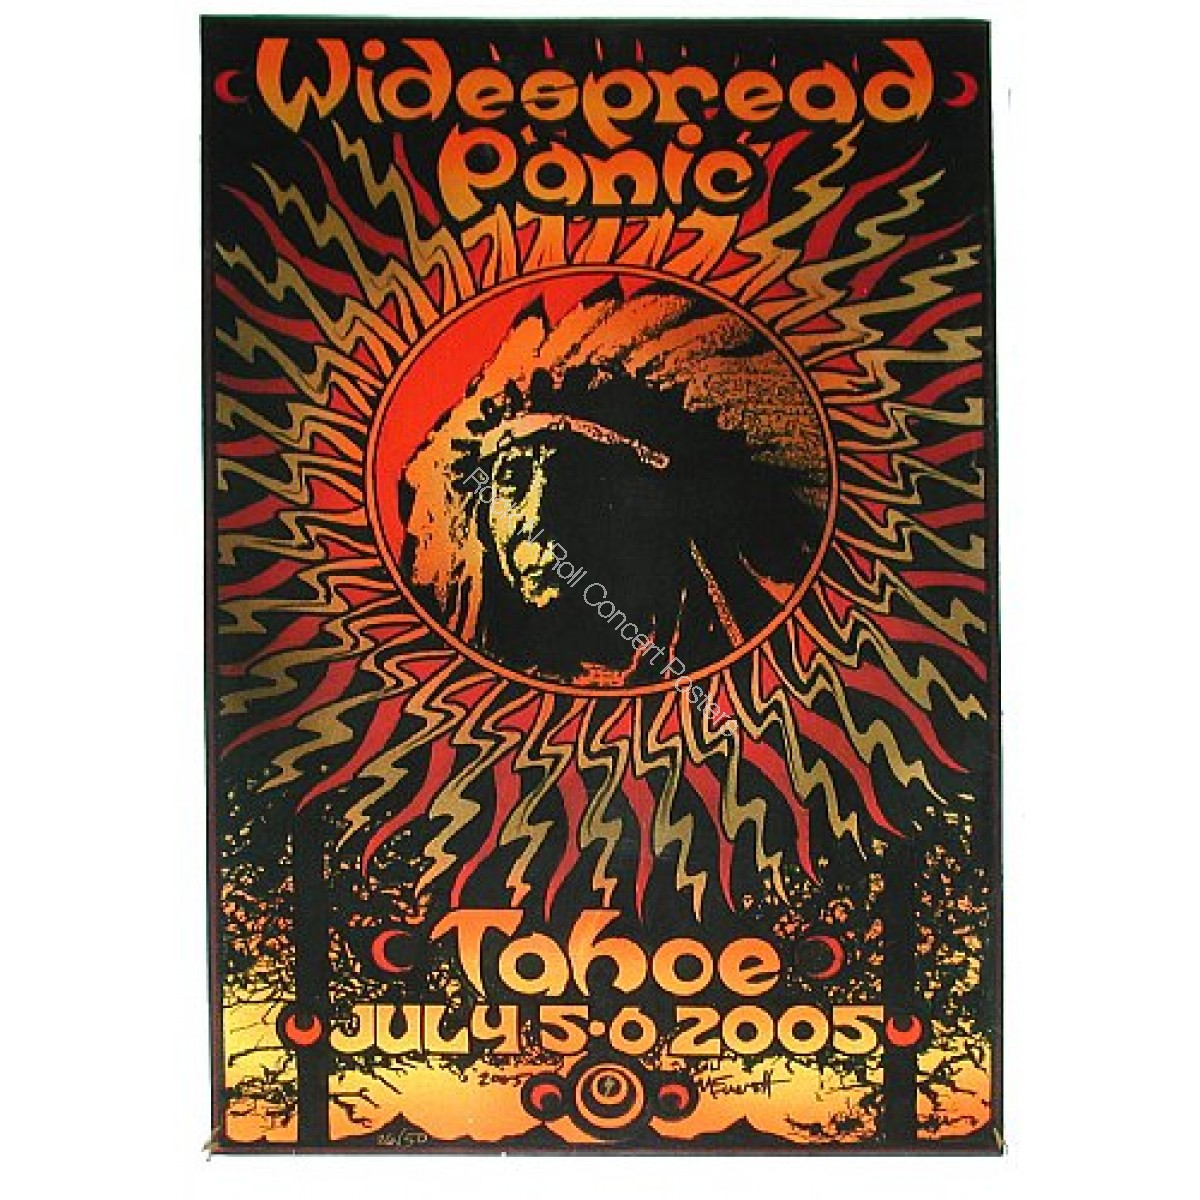 Widespread Panic Lake Tahoe July 5th & 6th 2005 Hand Numbered poster edition of 50 By Michael Everett